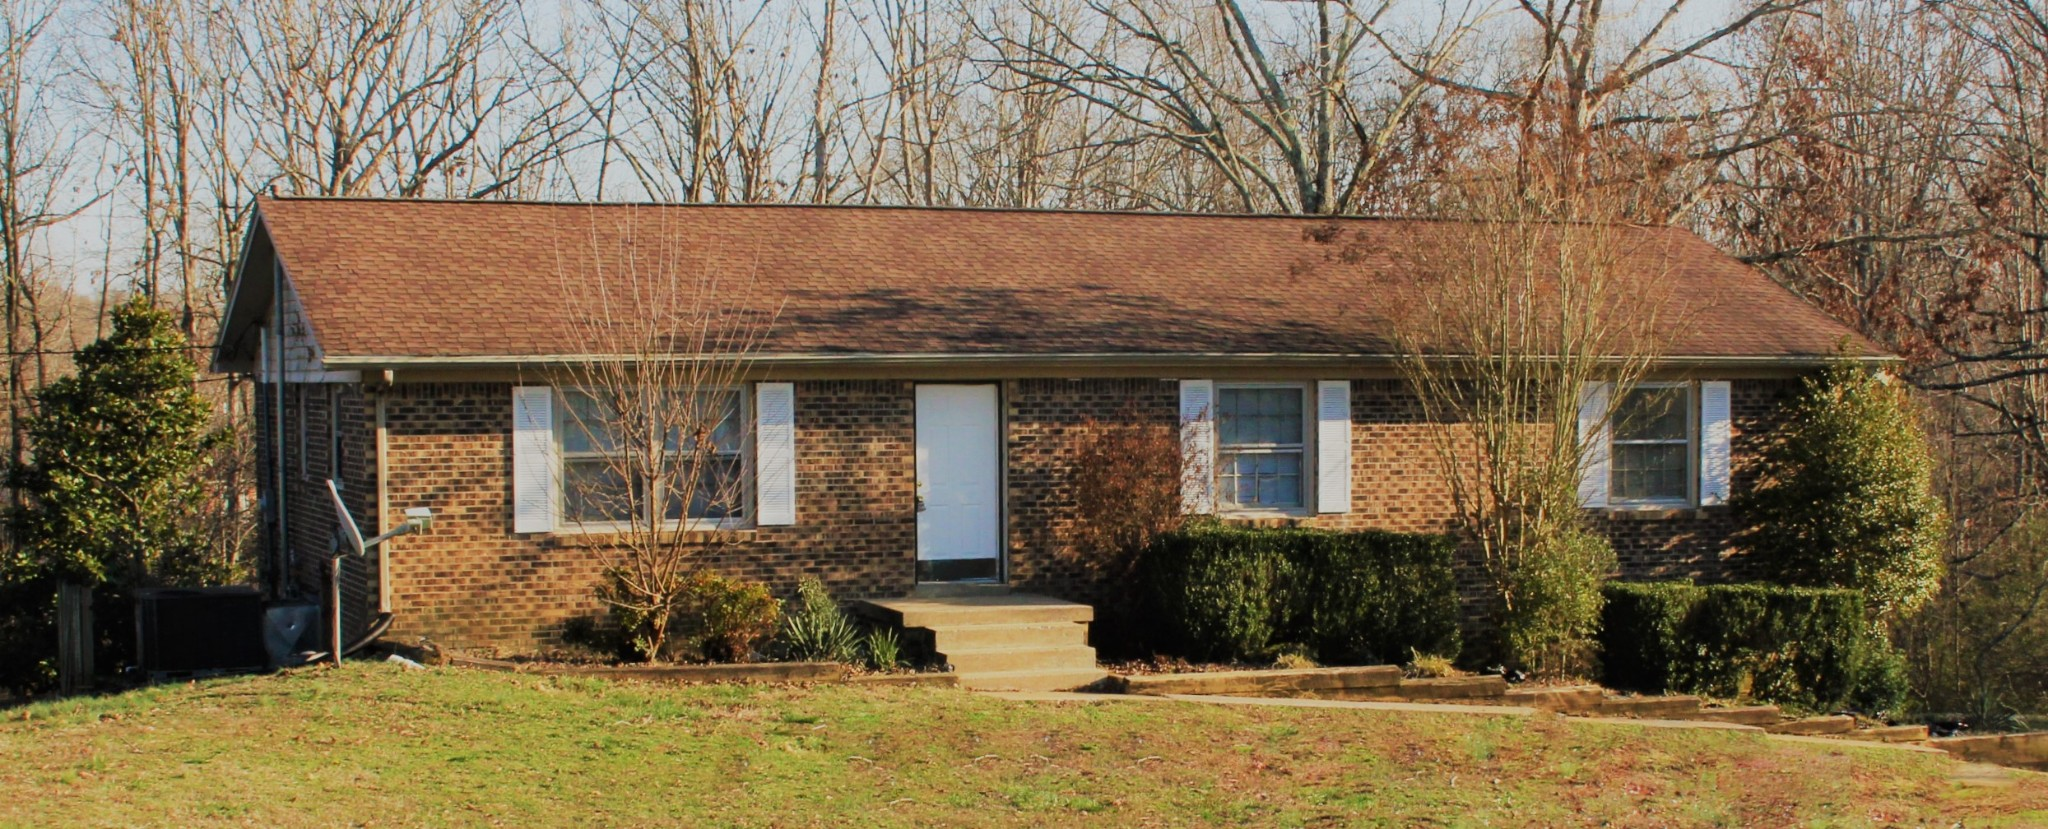 359 Powers Blvd, Waverly, TN 37185 - Waverly, TN real estate listing